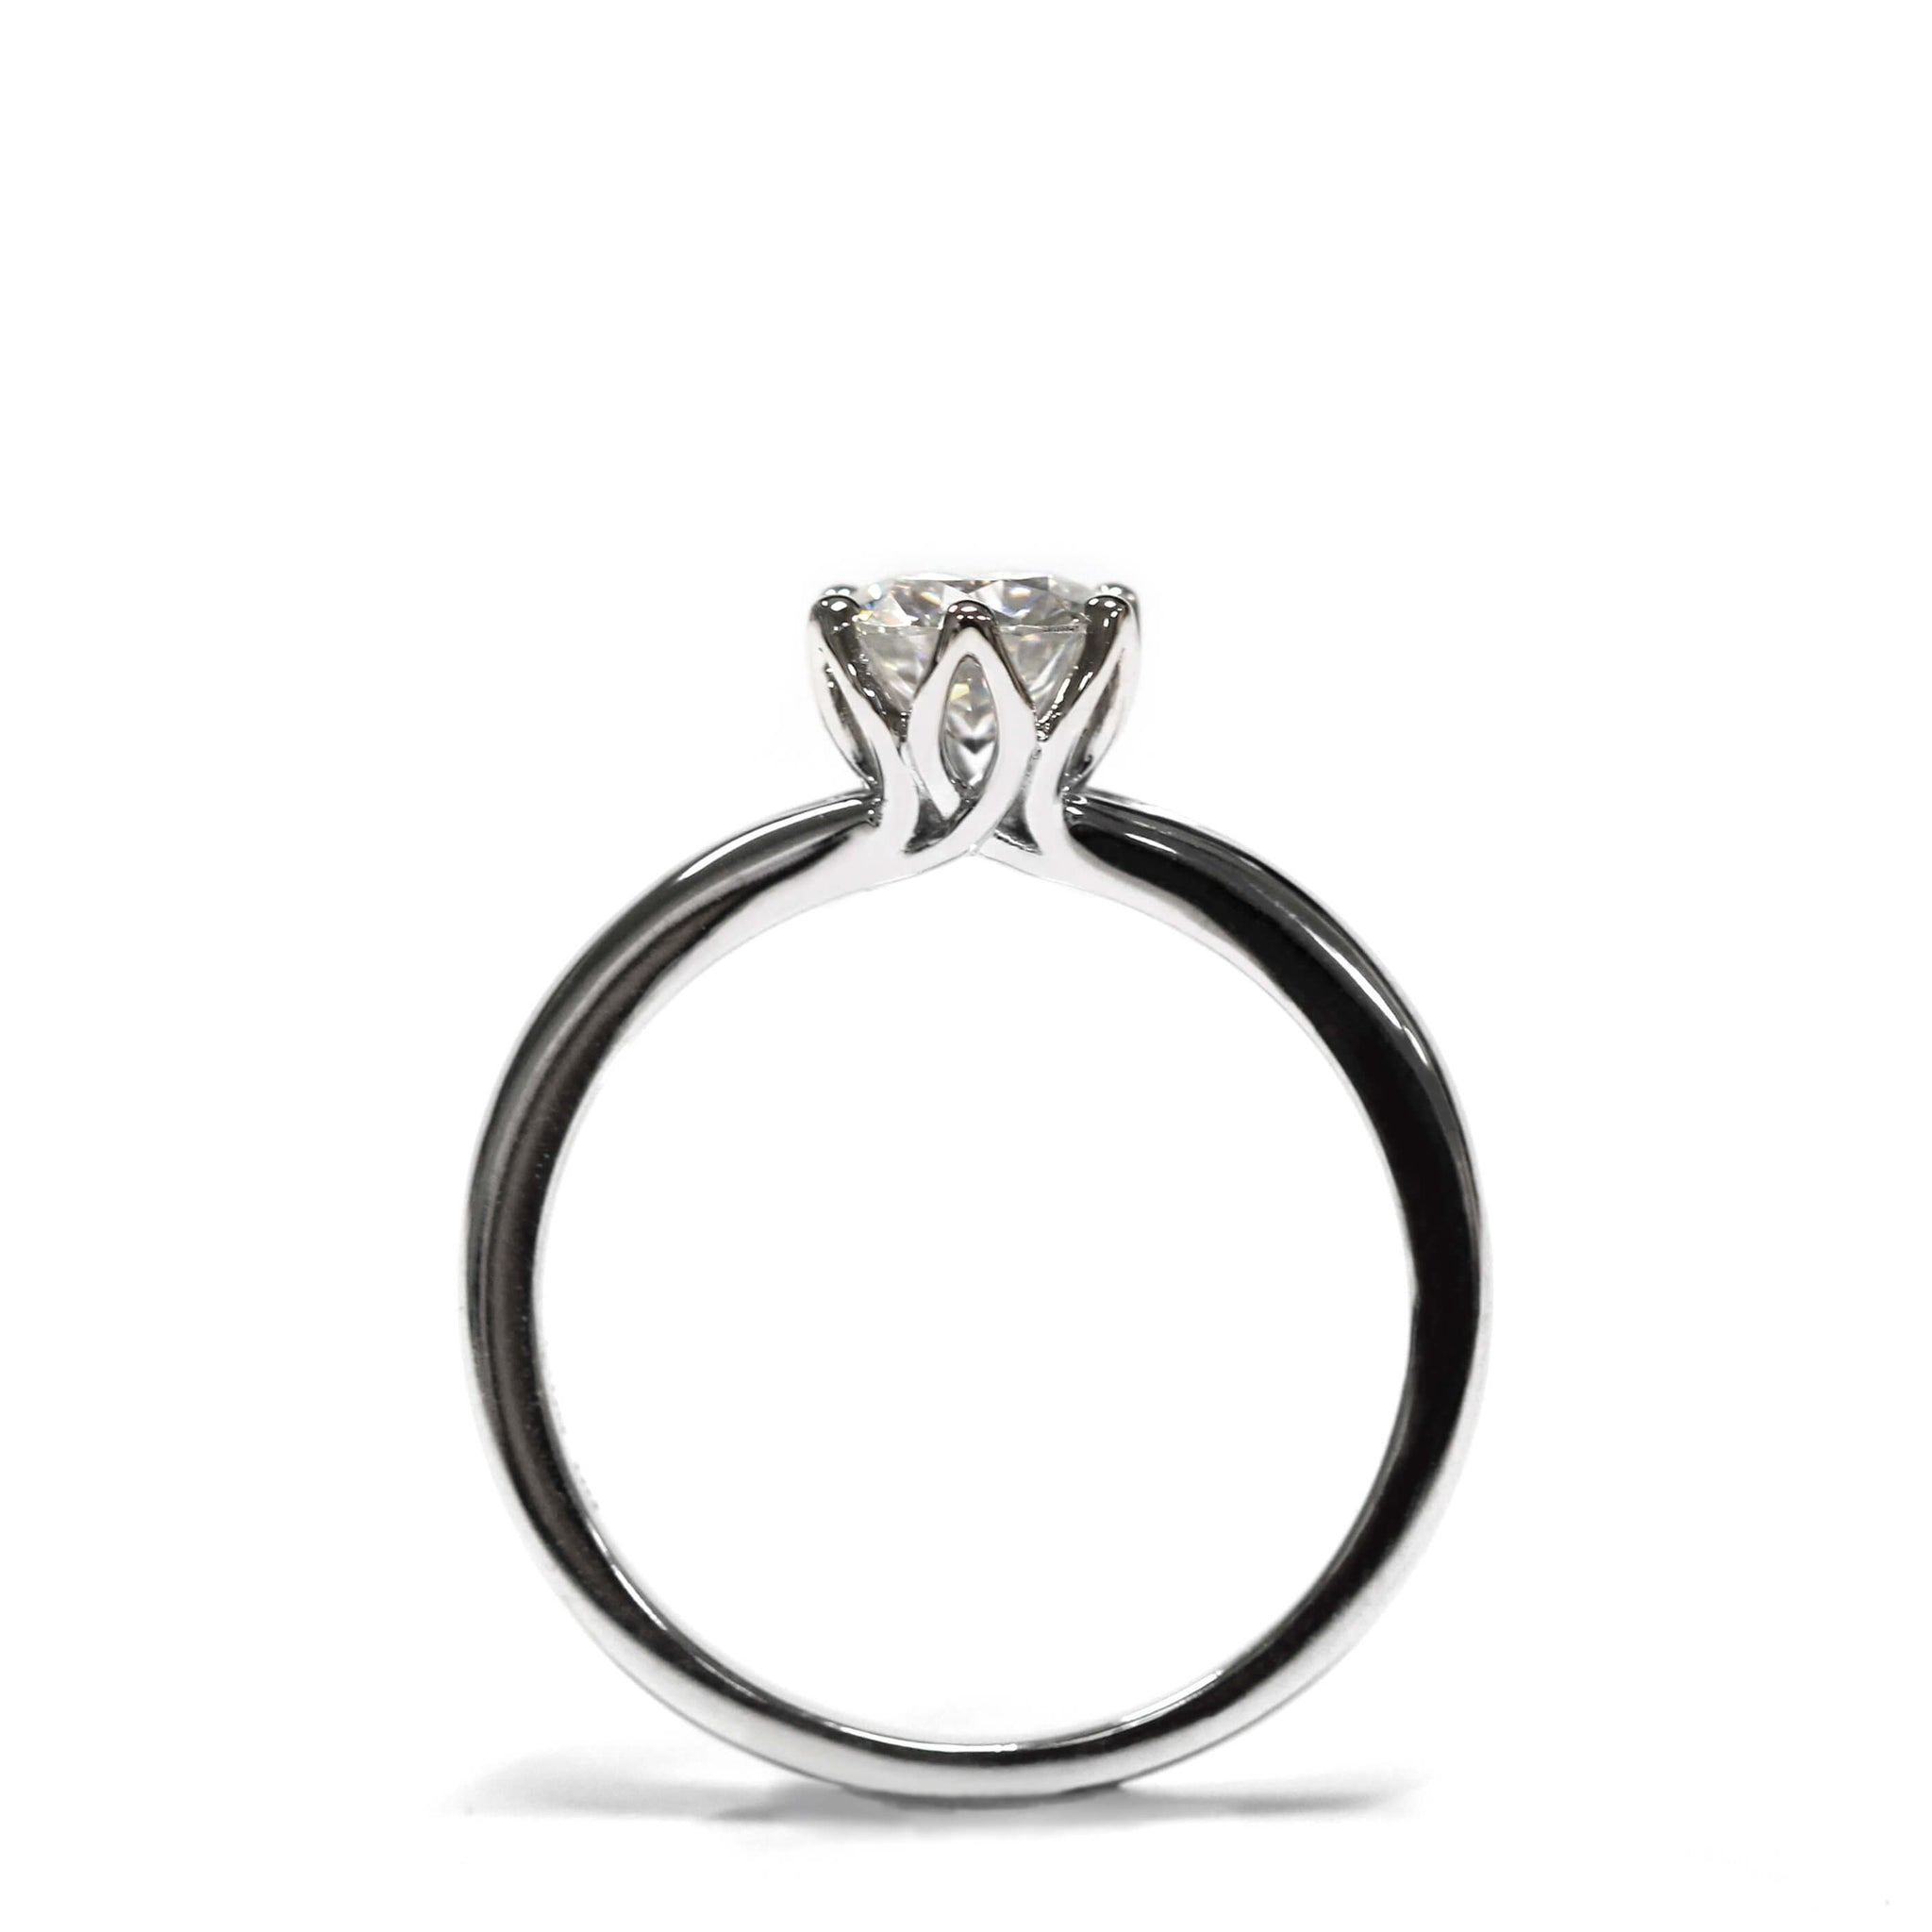 1 Carat Moissanite Solitaire with Flower Petal Setting